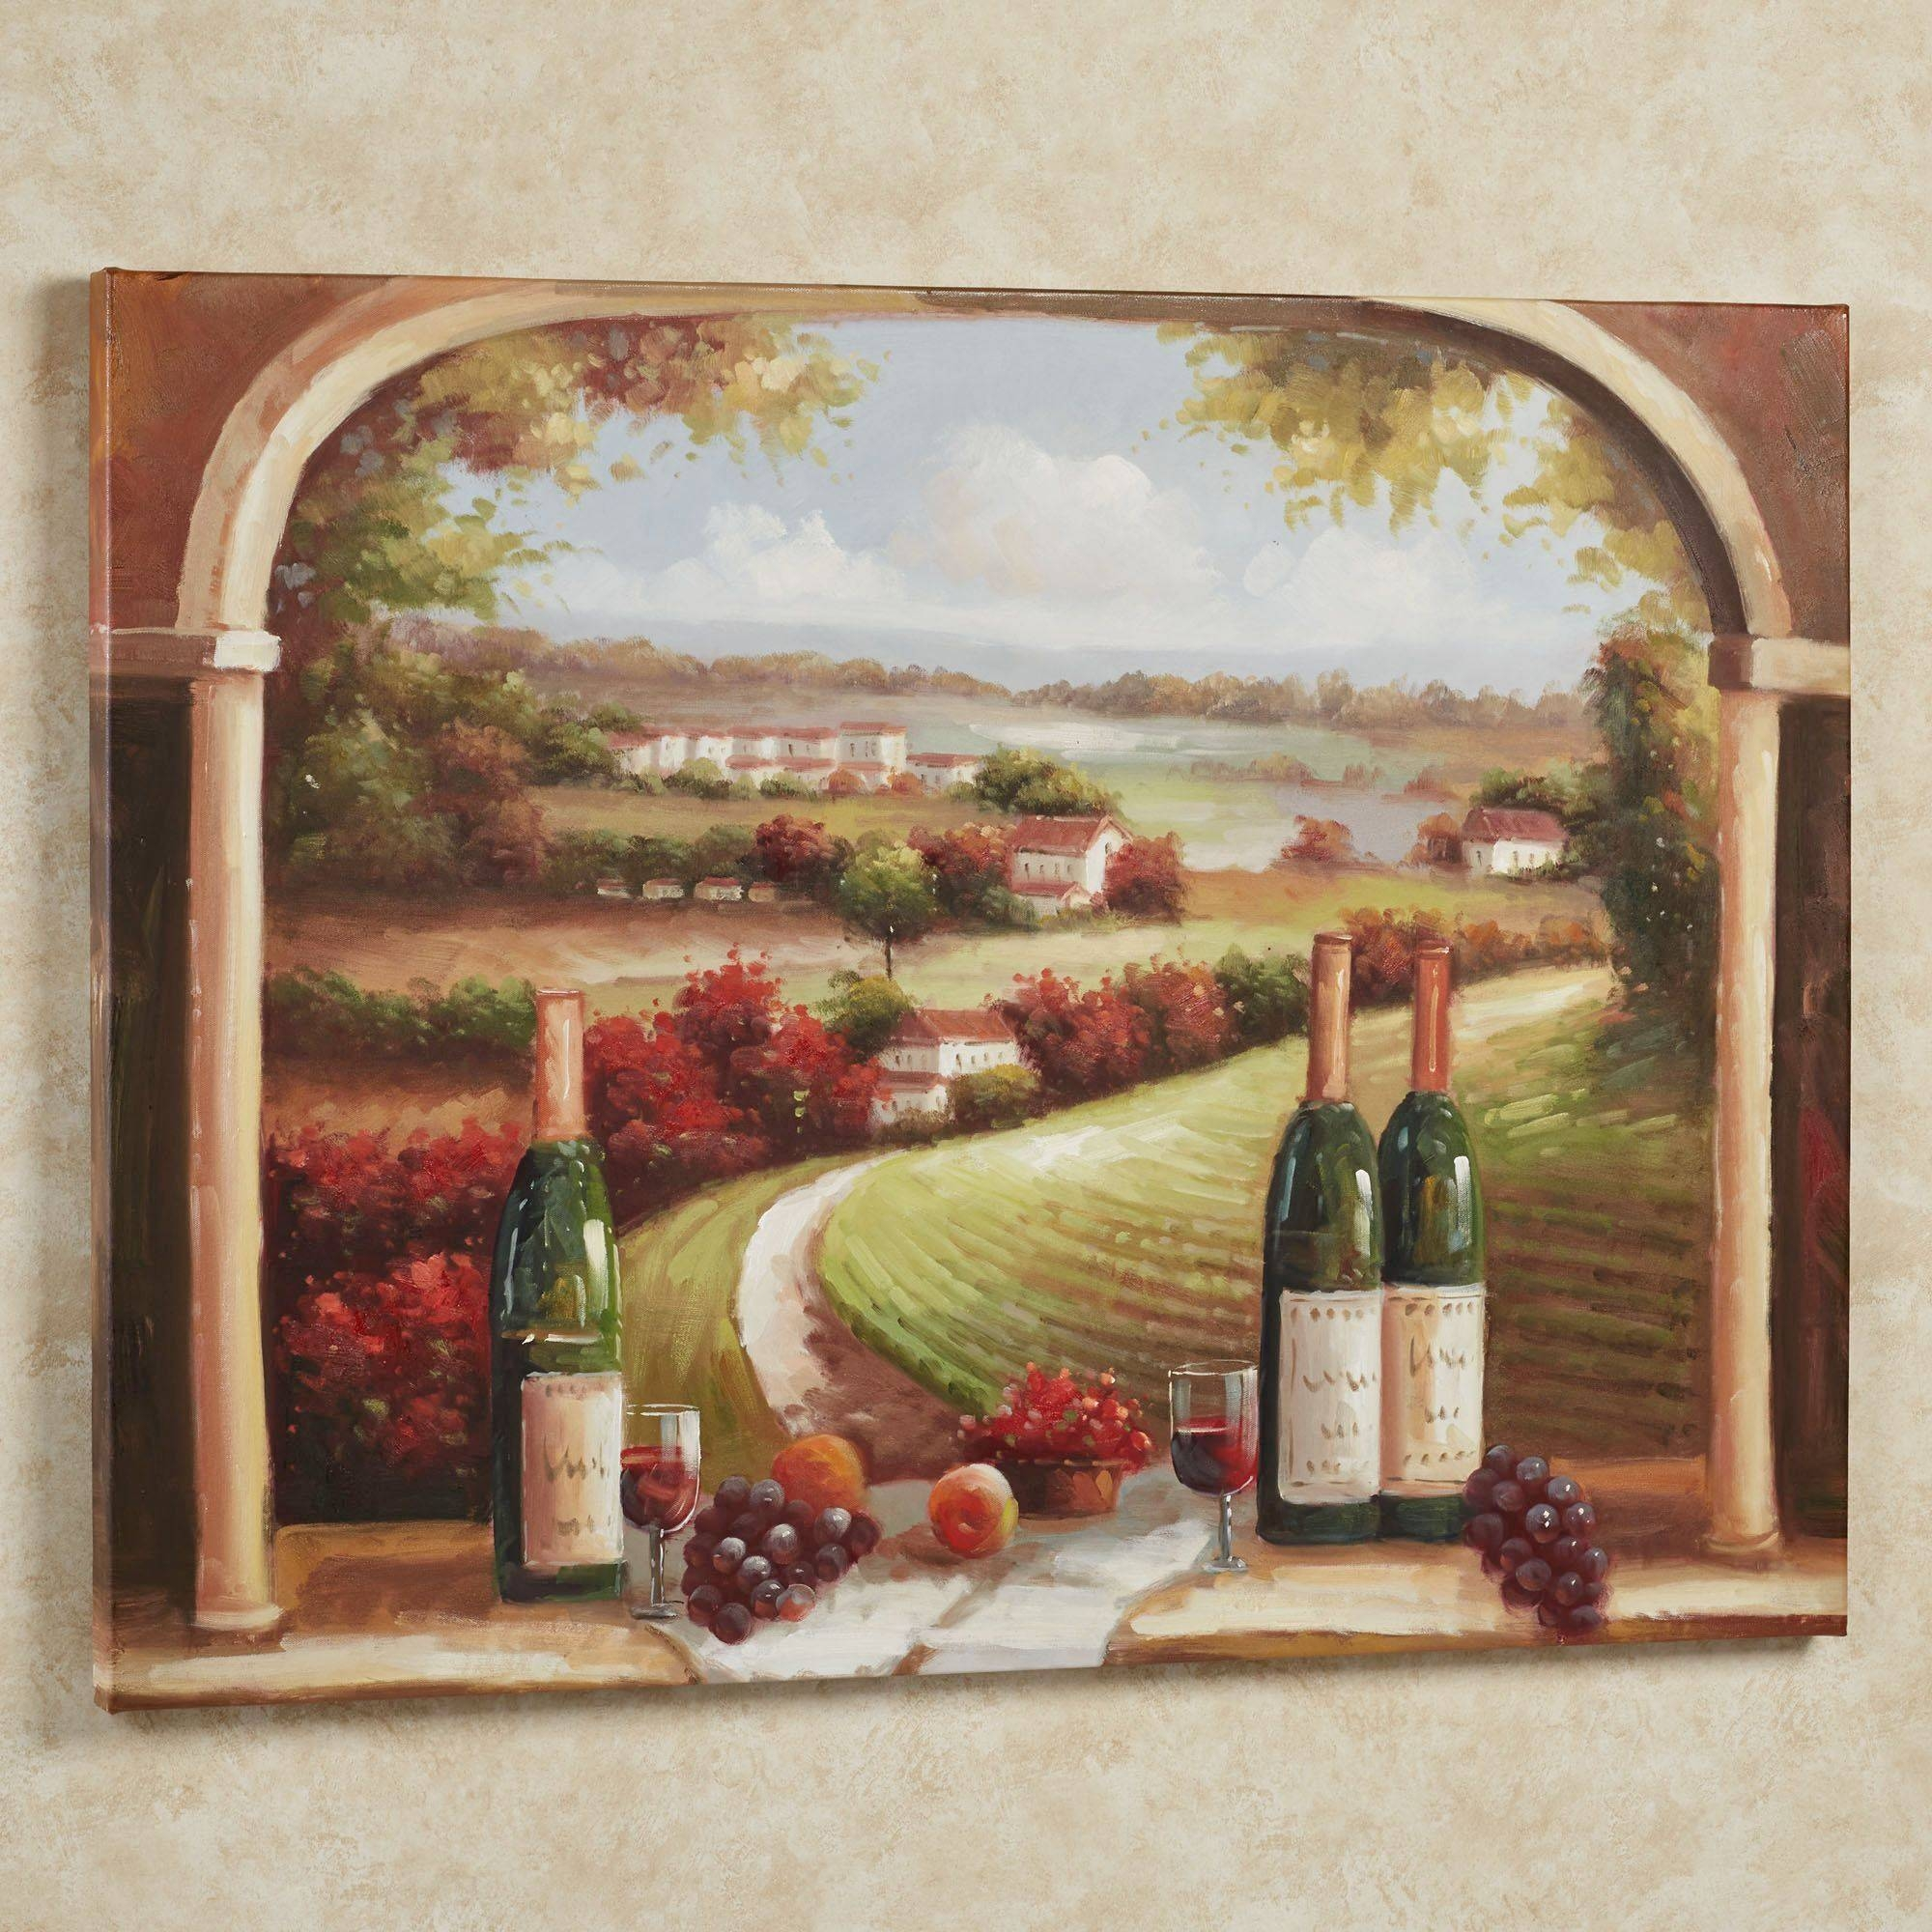 Wall Decor: Wine Wall Art Images. Wine Wall Art For Kitchen (View 7 of 20)